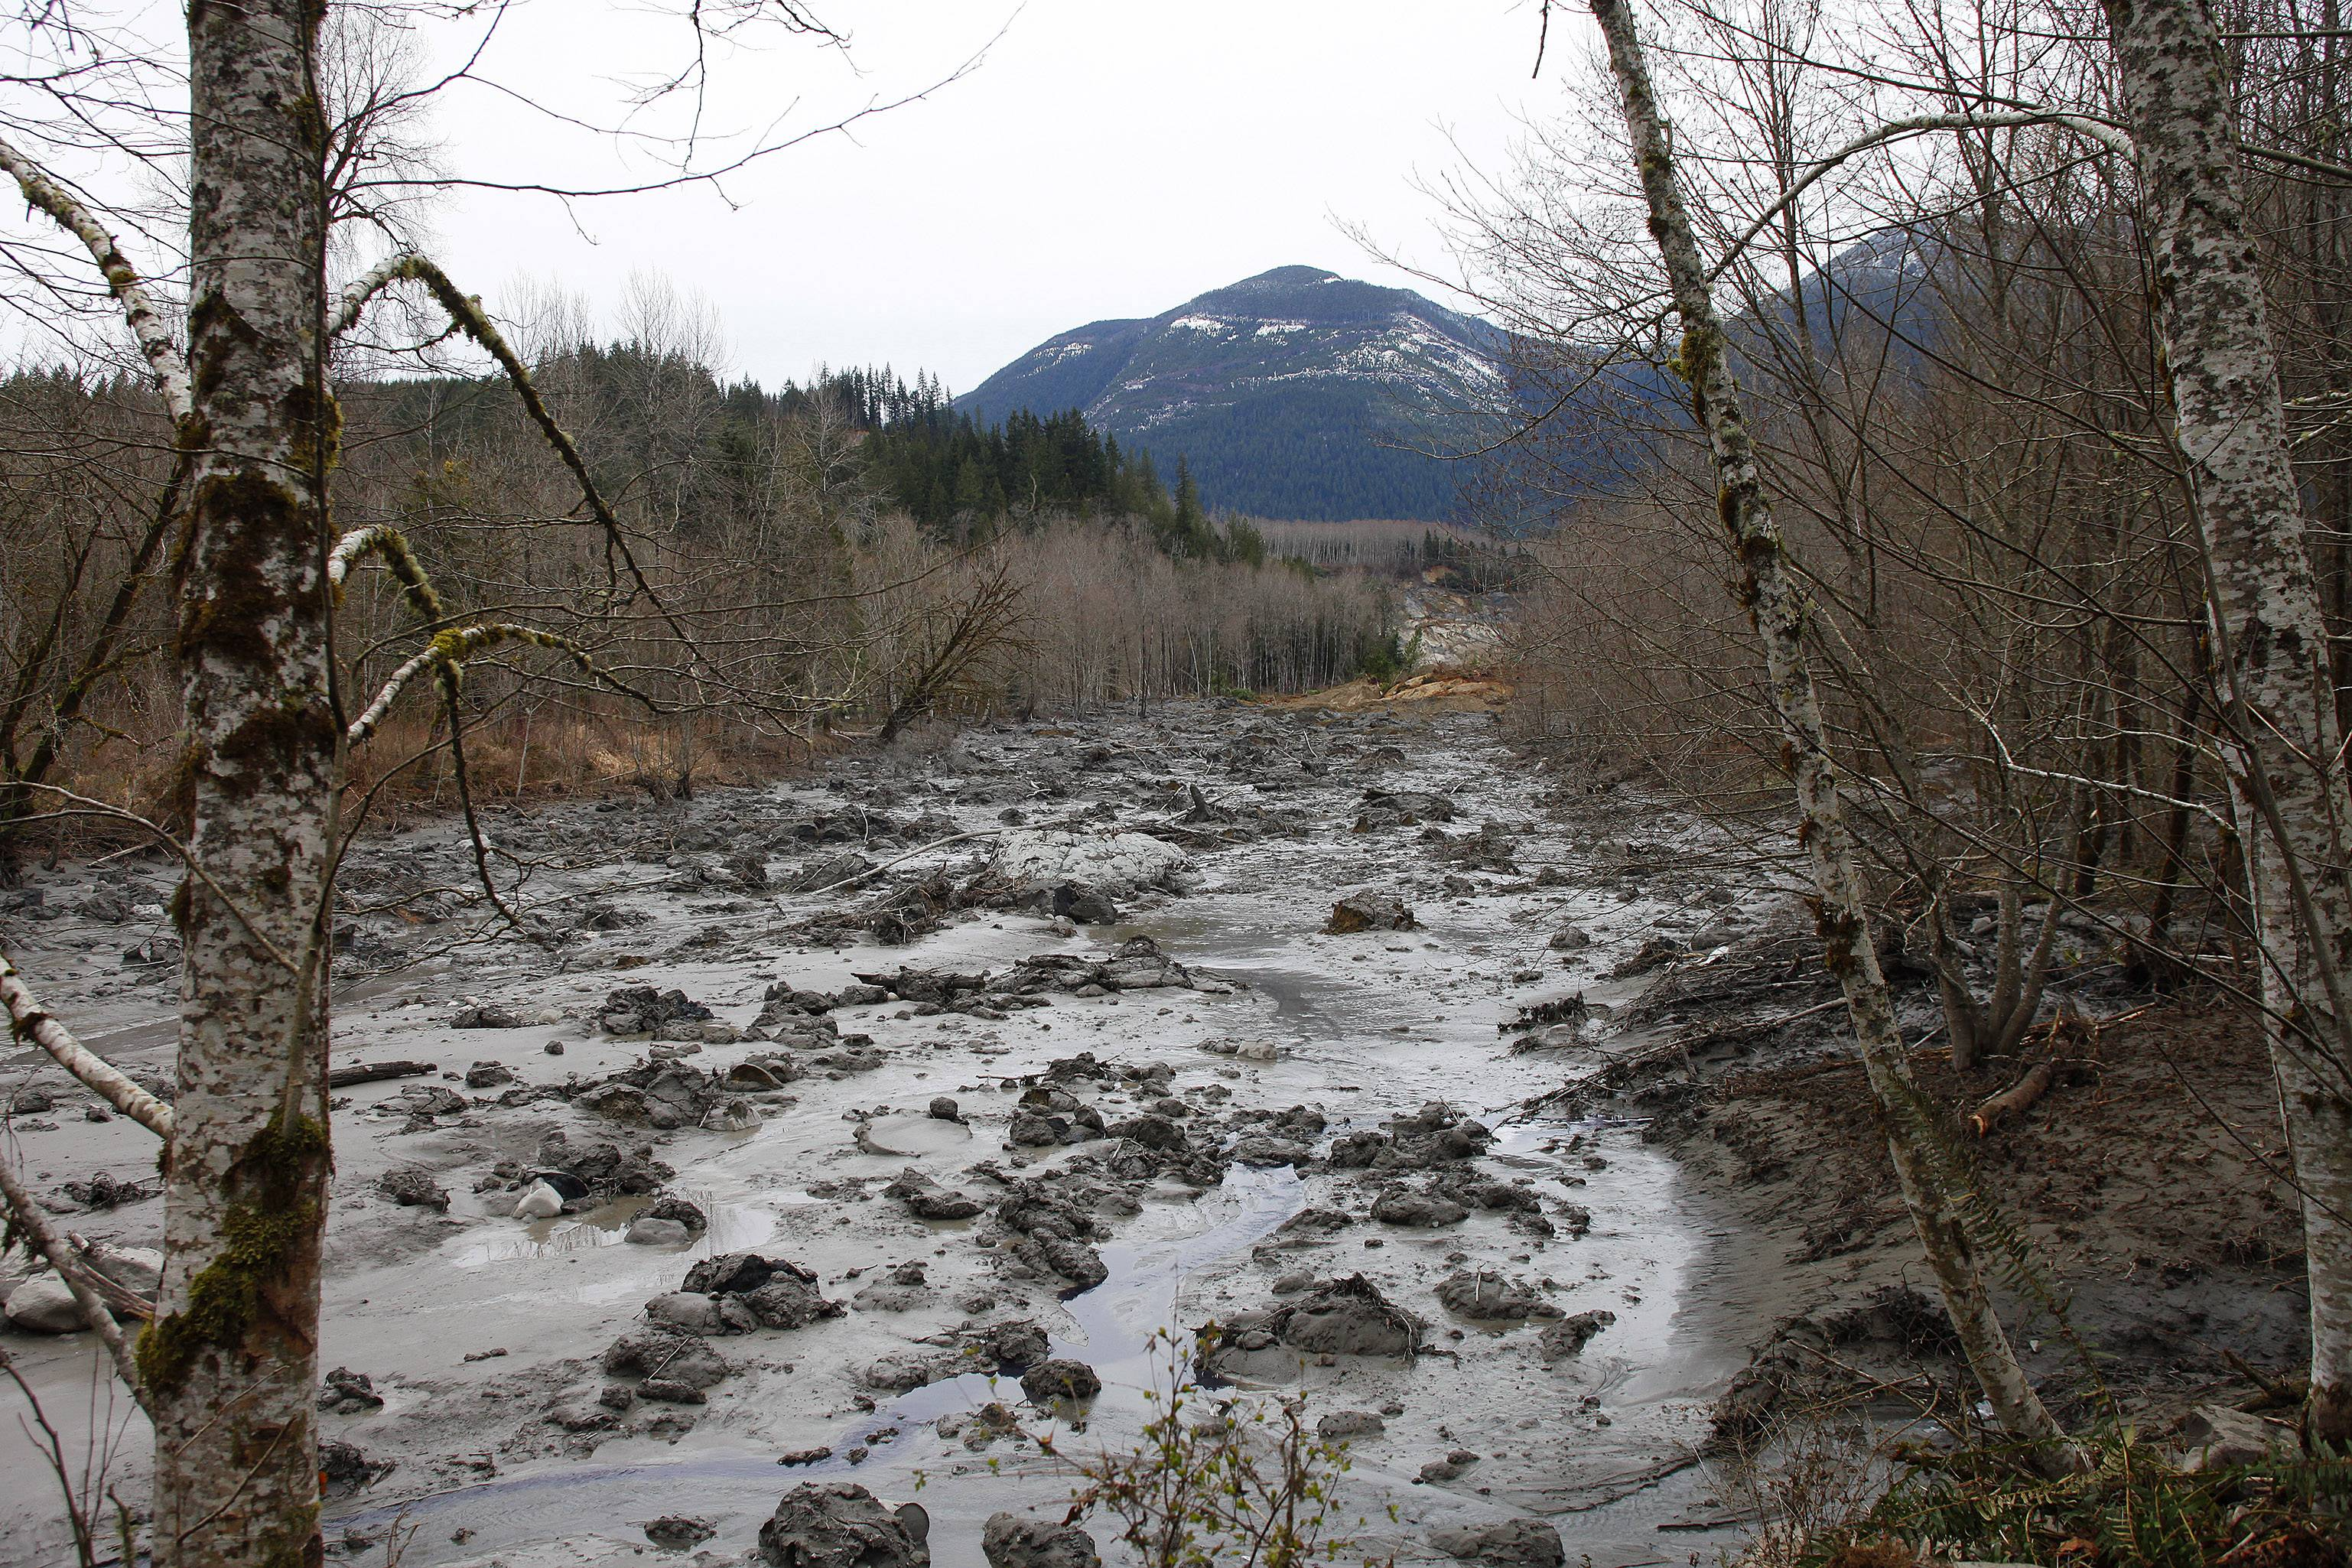 A fatal mudslide brought debris down the Stillaguamish River near Oso, Wash., Saturday, stopping the flow of the river and destroying several homes.